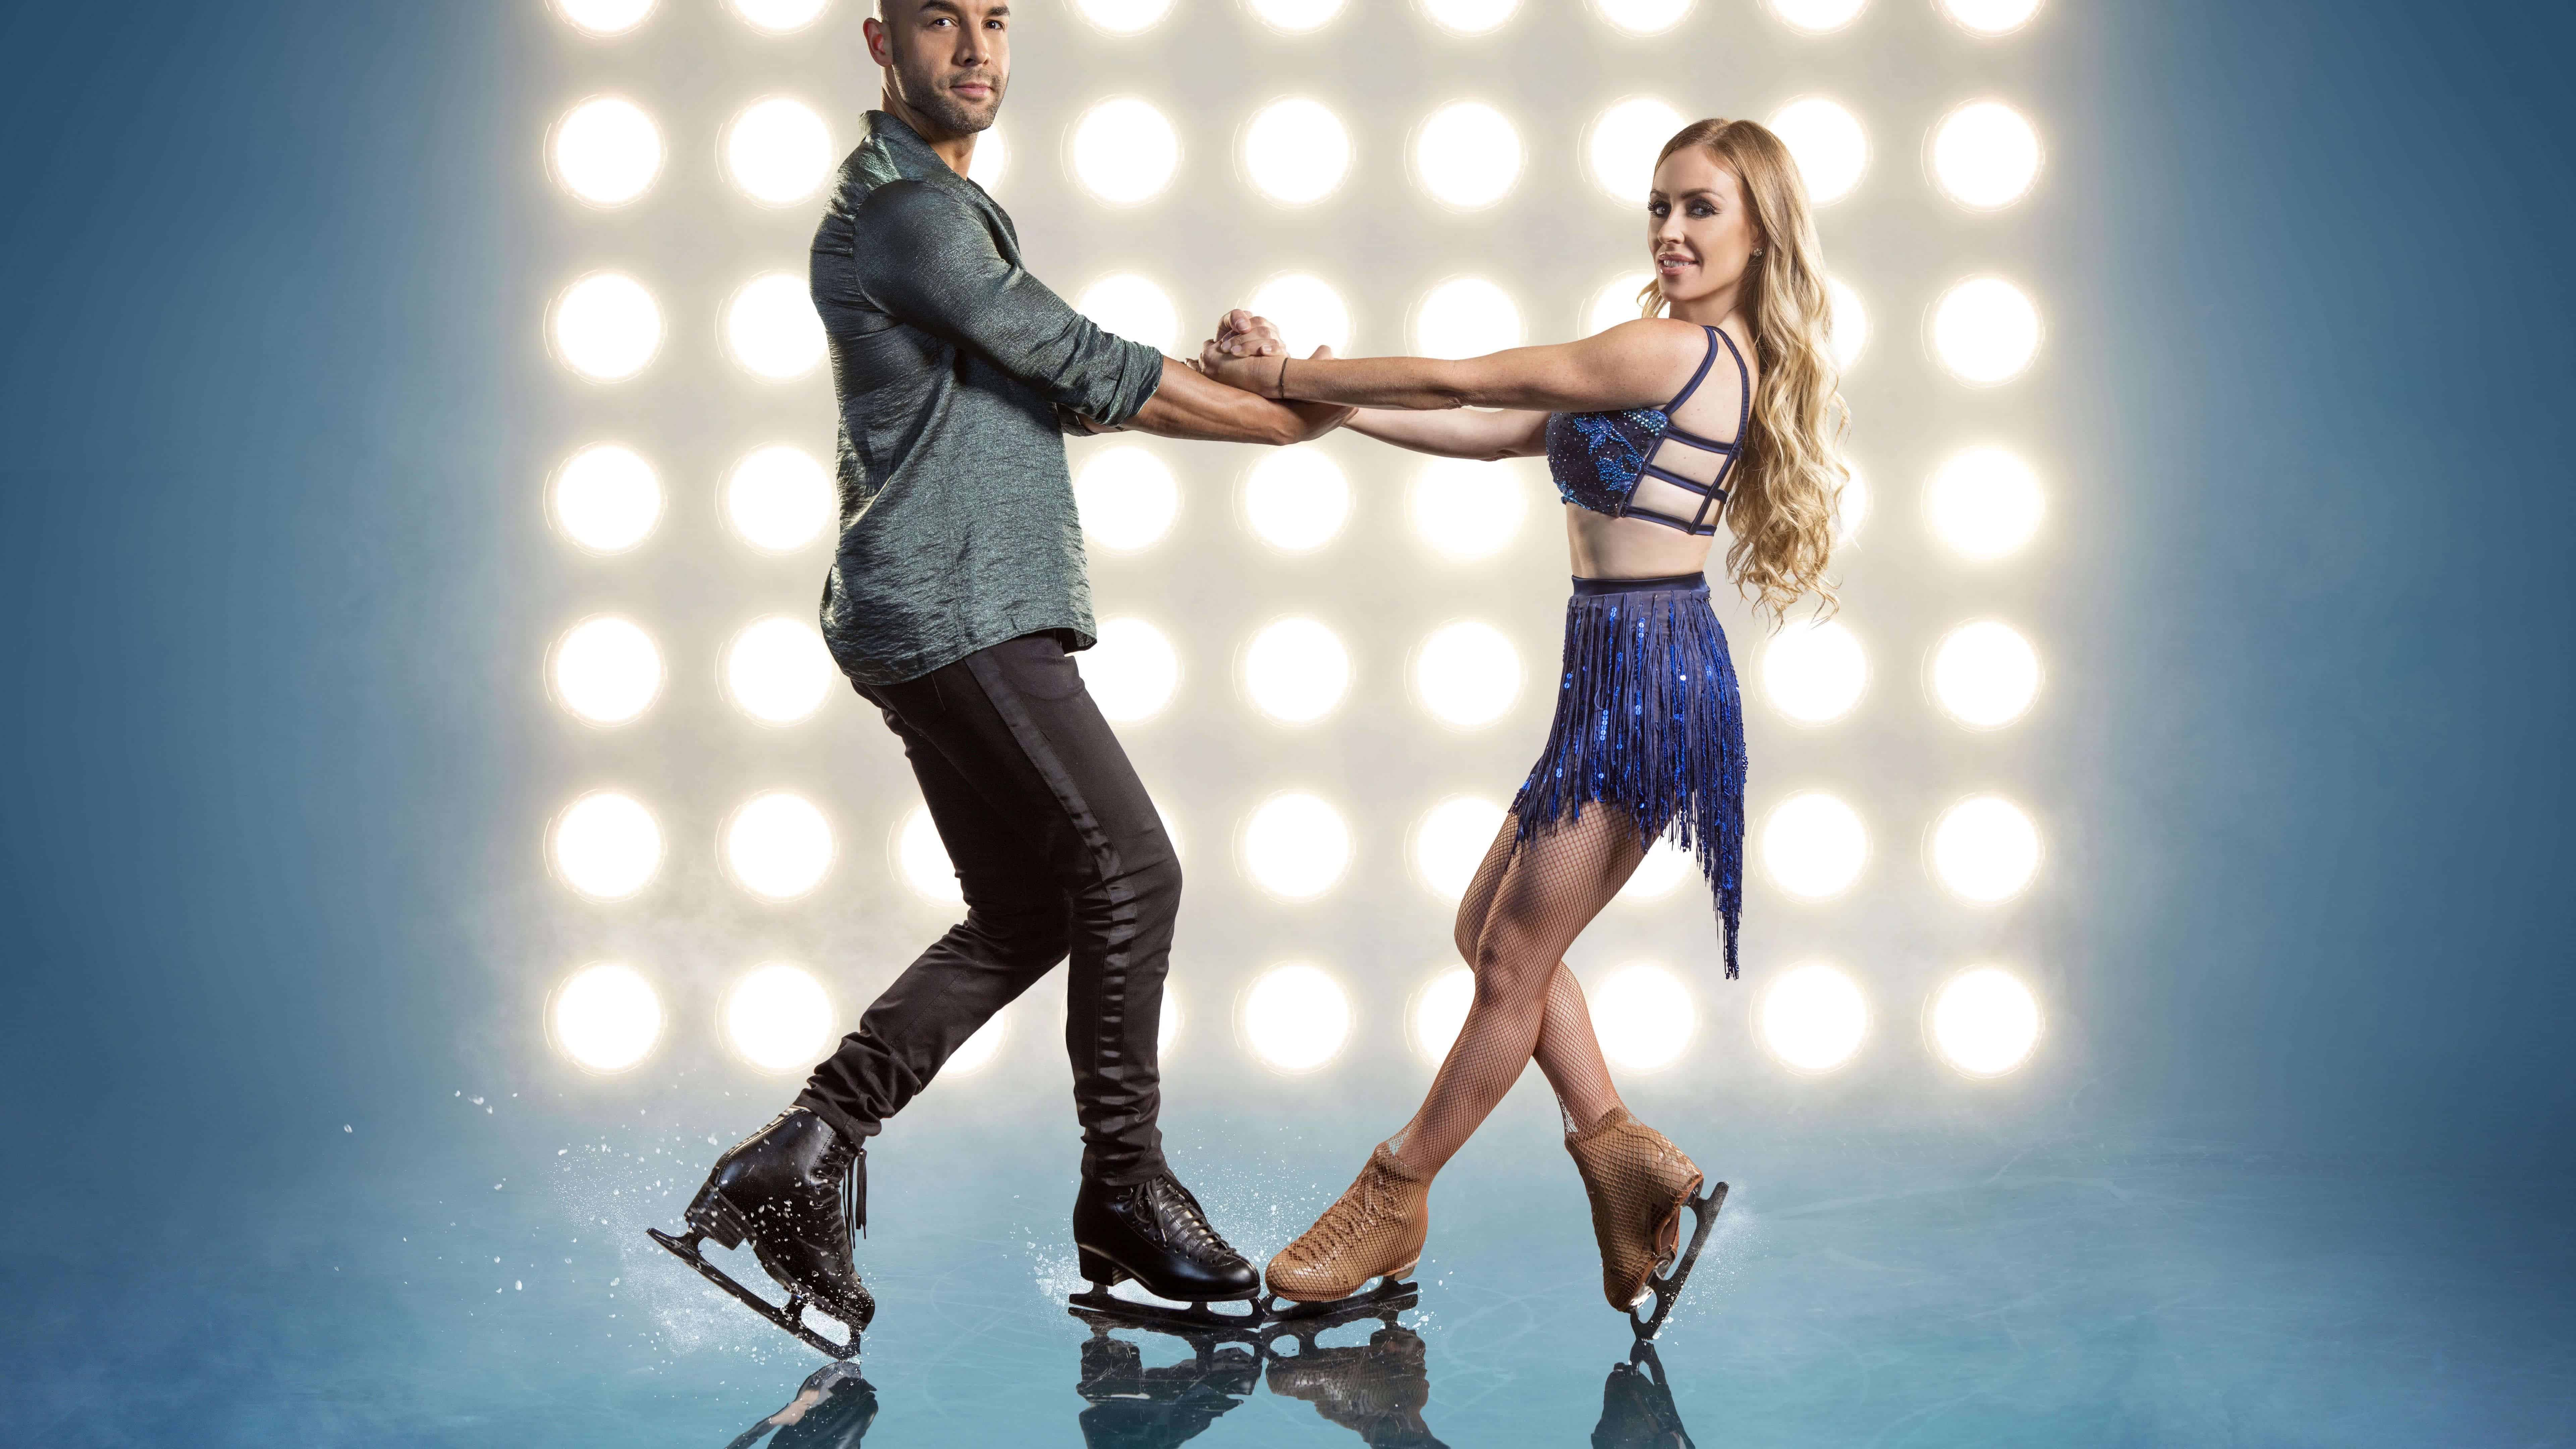 Dancing On Ice Alex Beresford UHD 8K Wallpapers